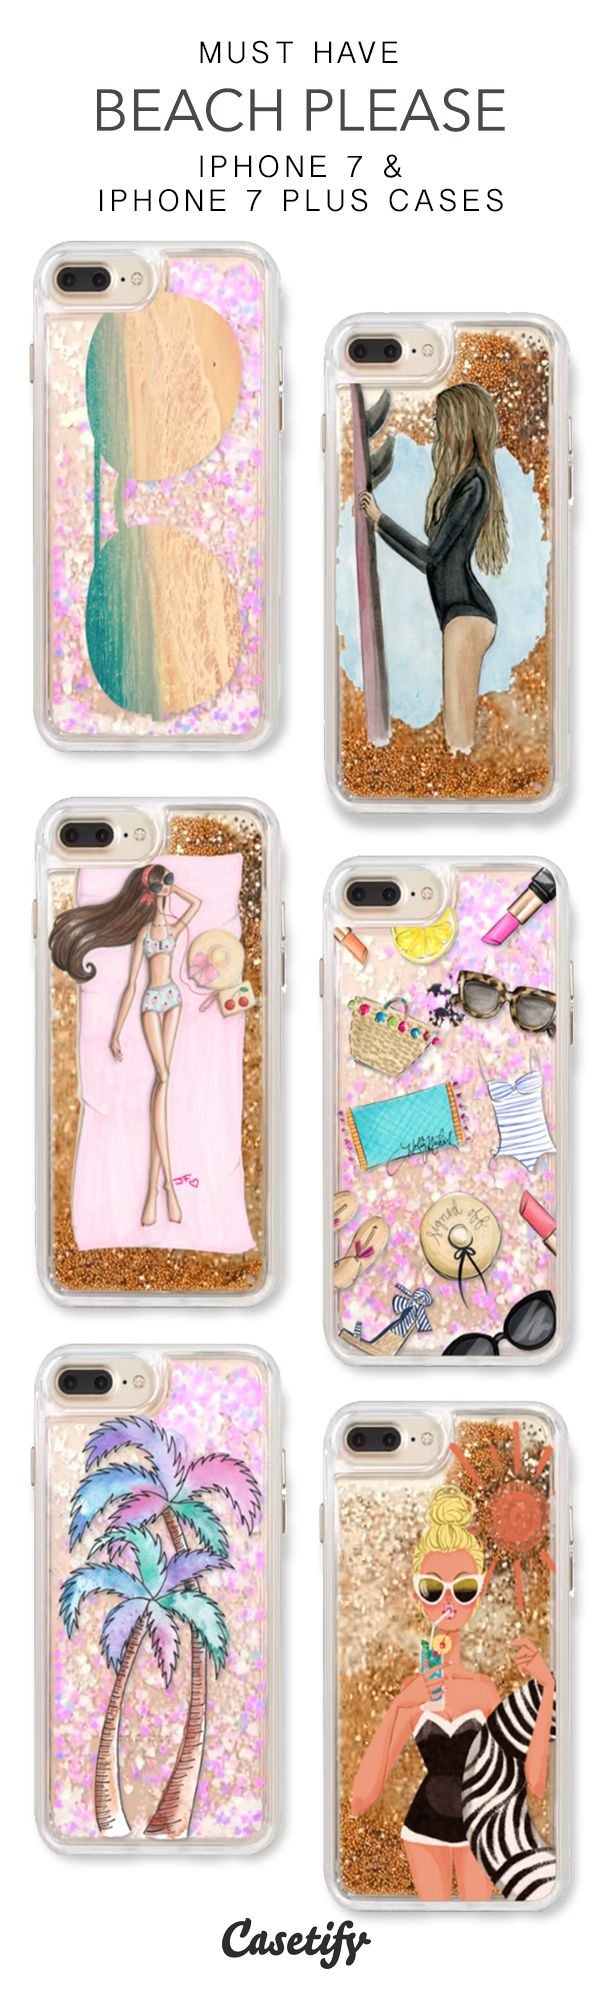 Must Have Beach Please iPhone 7 Cases & iPhone 7 Plus Cases. More glitter iPhone case here > https://www.casetify.com/en_US/collections/iphone-7-glitter-cases#/